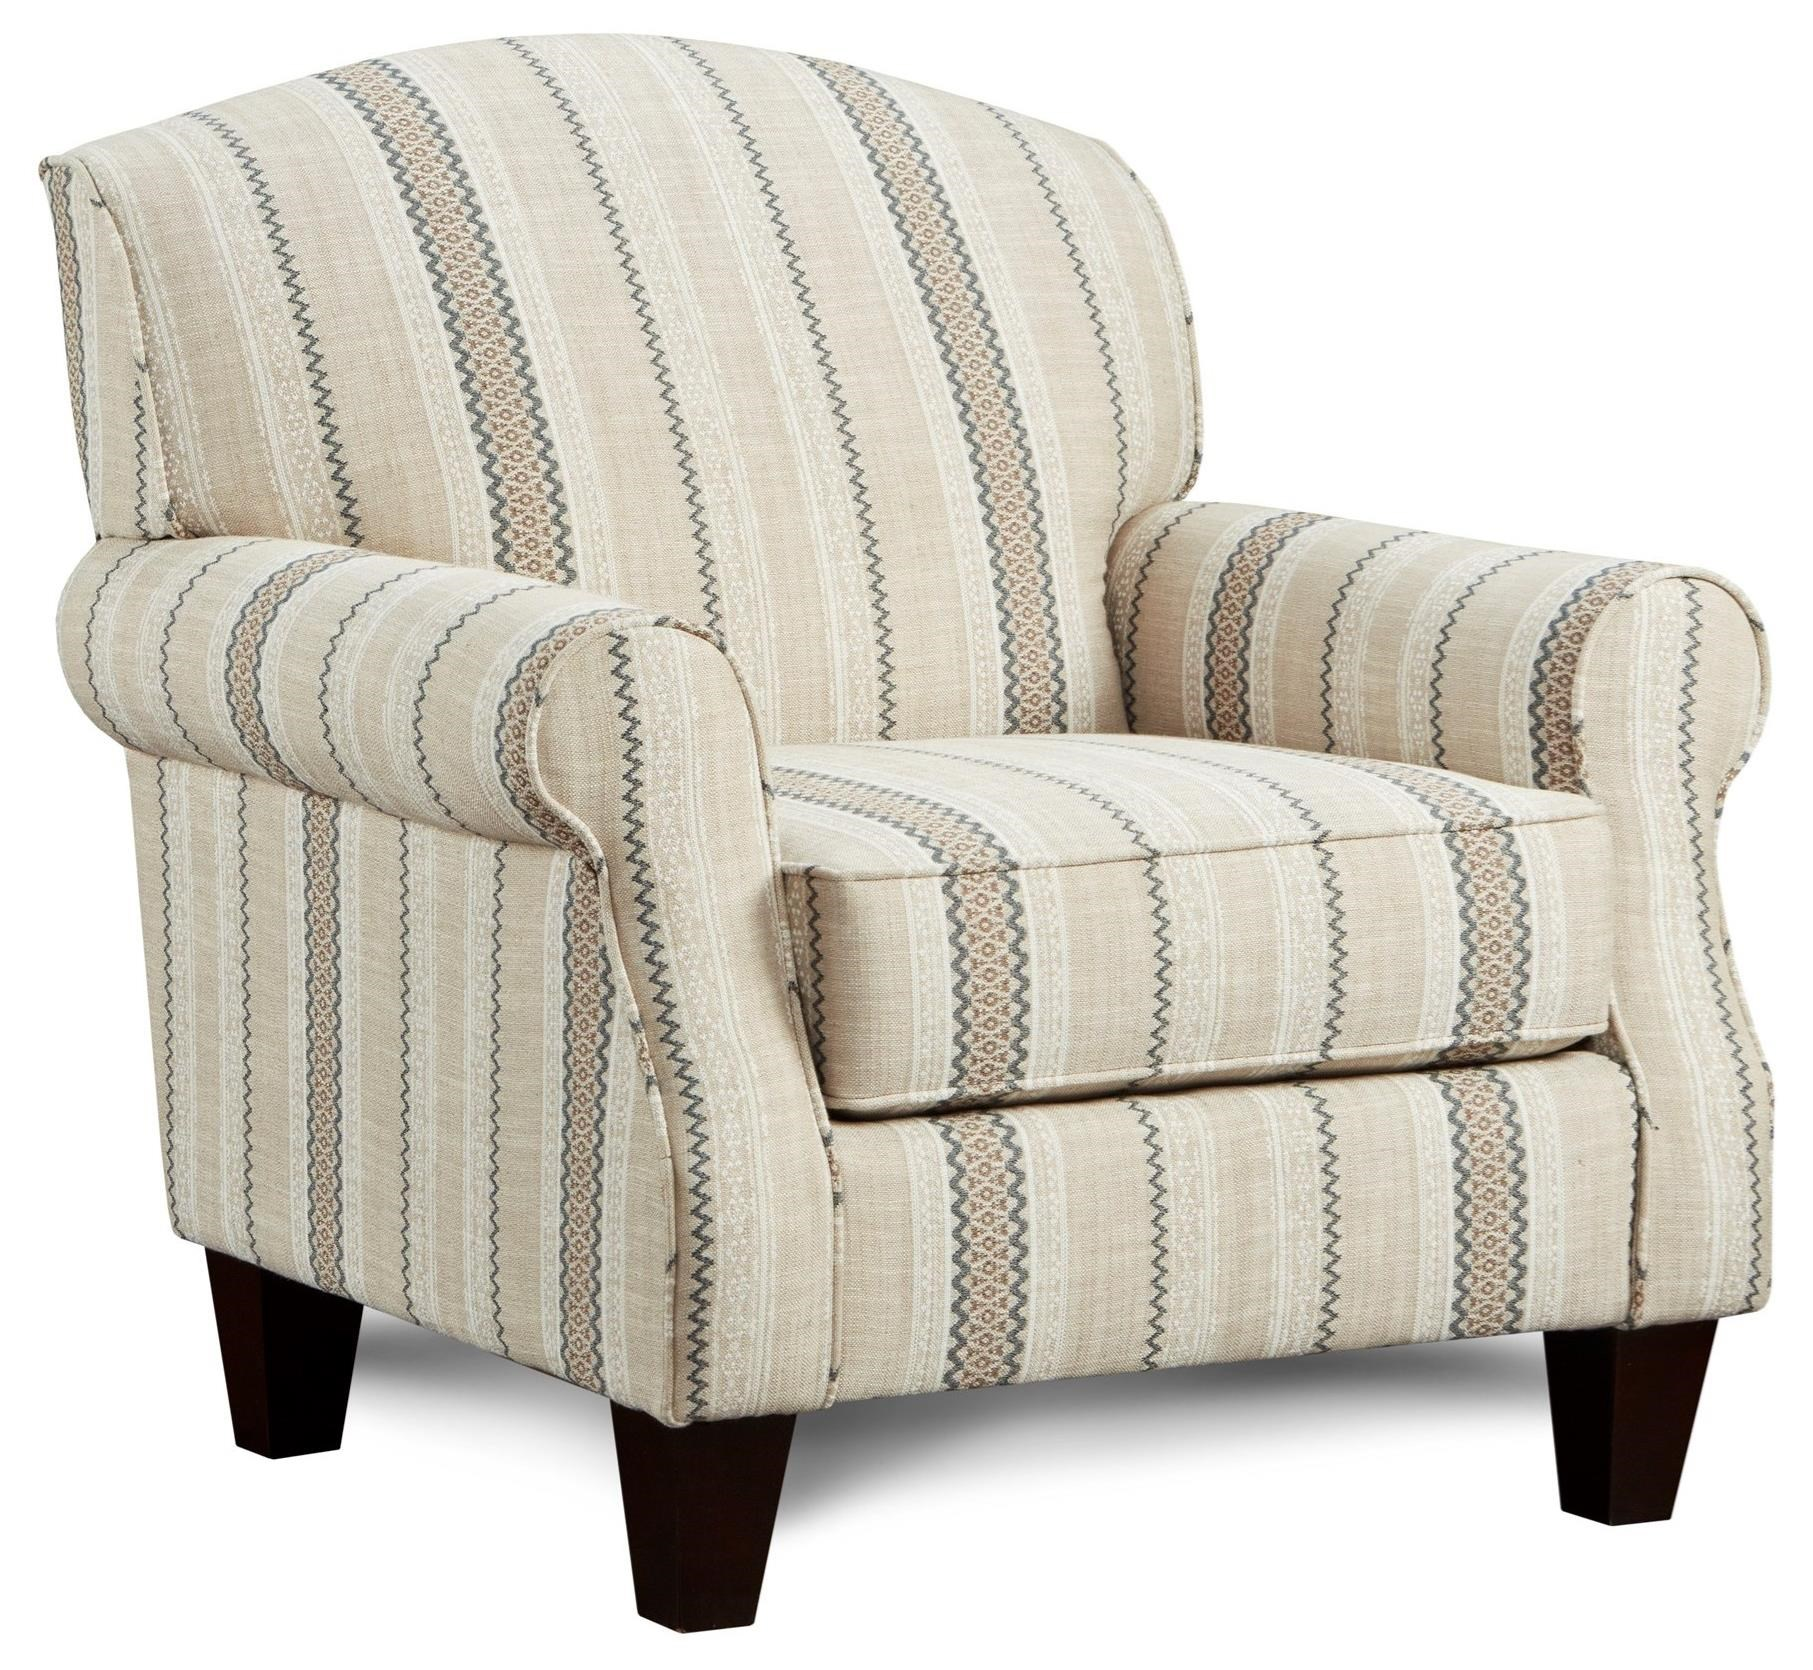 532 Accent Chair by Fusion Furniture at Furniture Superstore - Rochester, MN